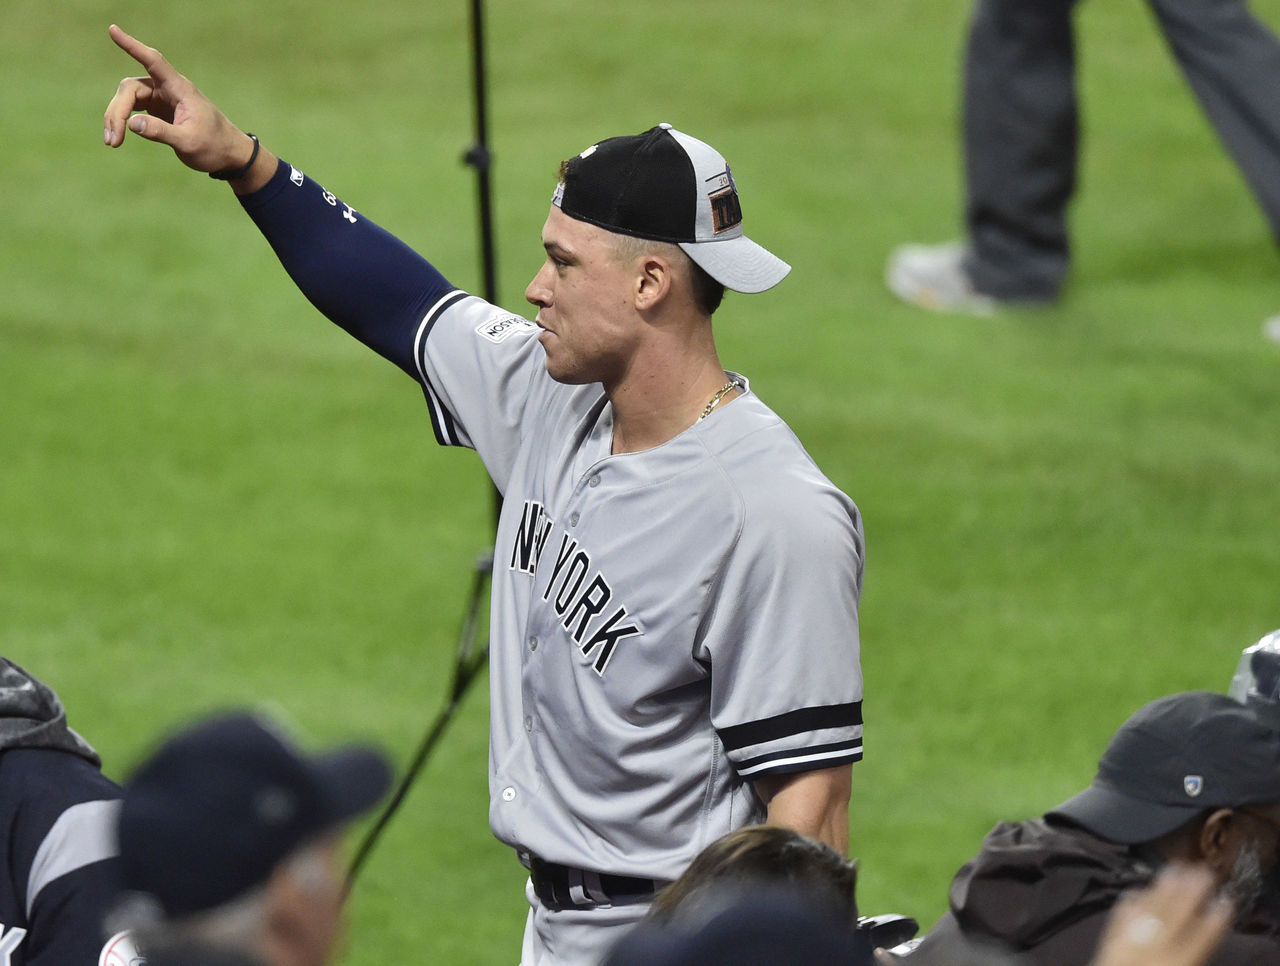 Cropped_2017-10-12t042331z_1284387445_nocid_rtrmadp_3_mlb-alds-new-york-yankees-at-cleveland-indians